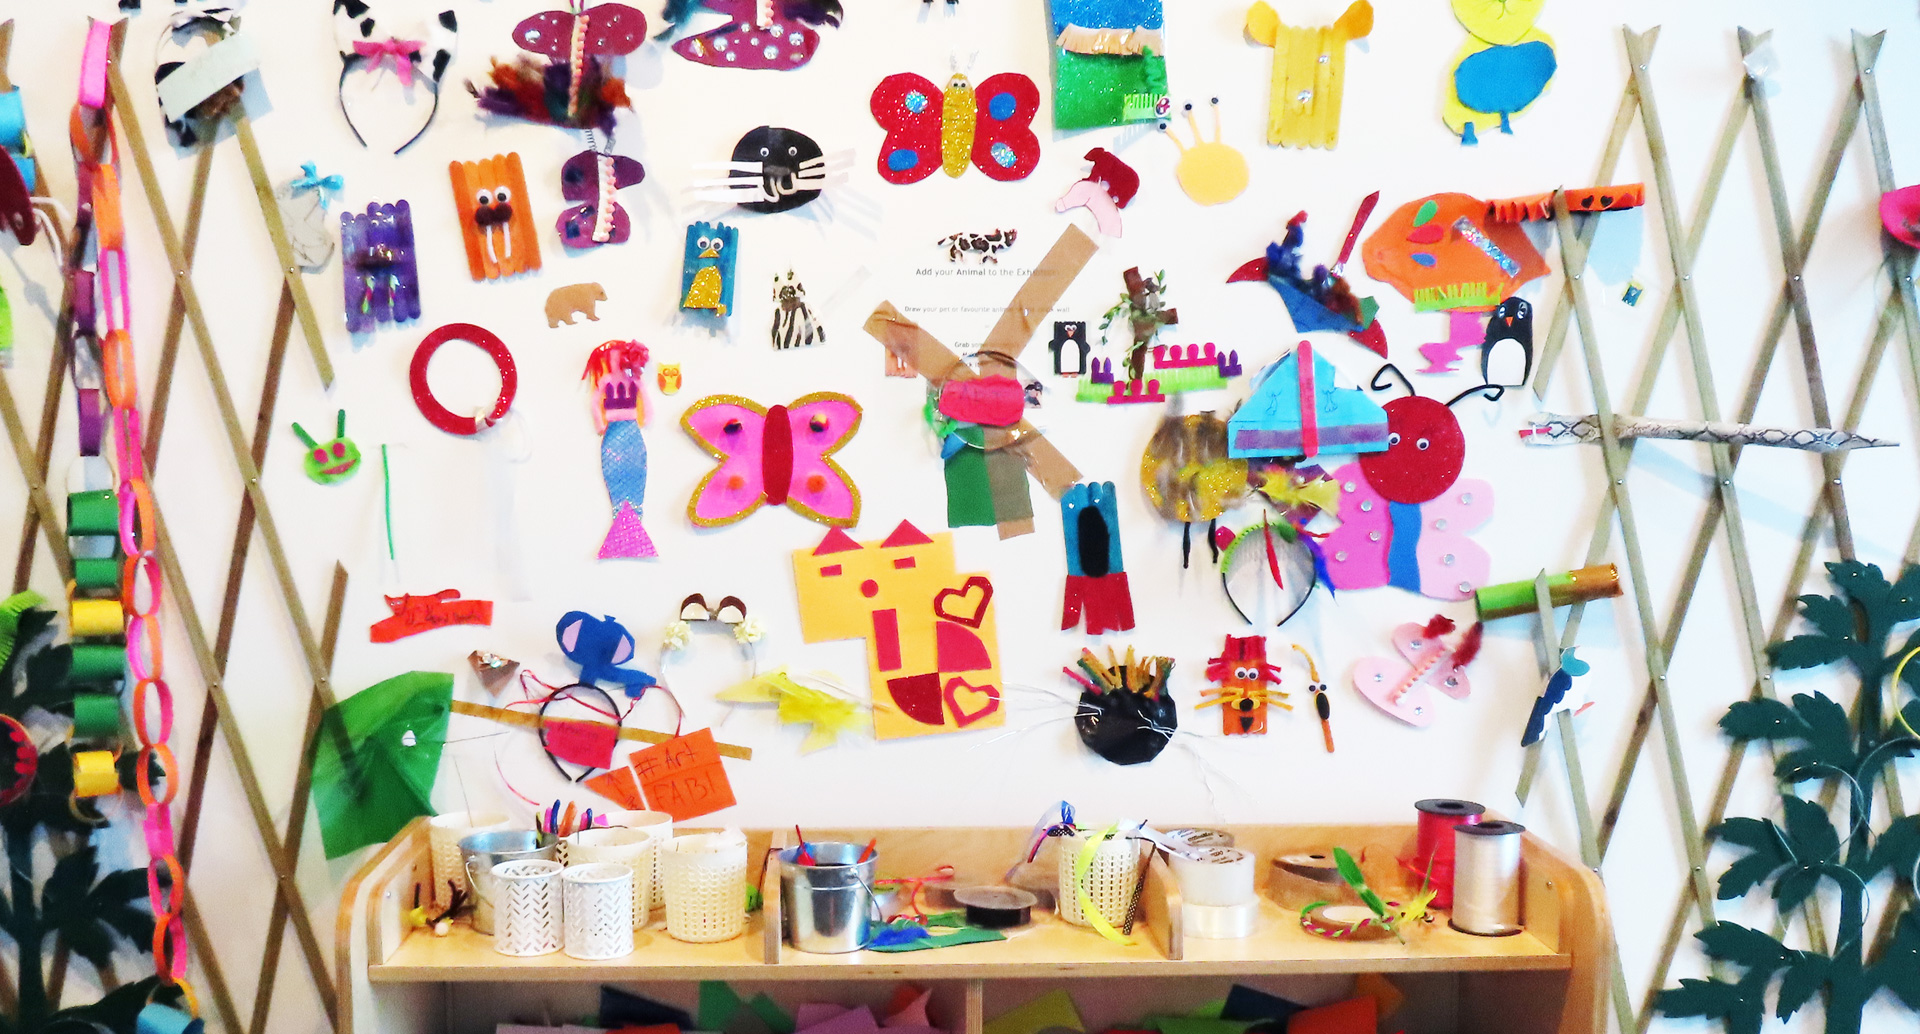 Wall Art created by children